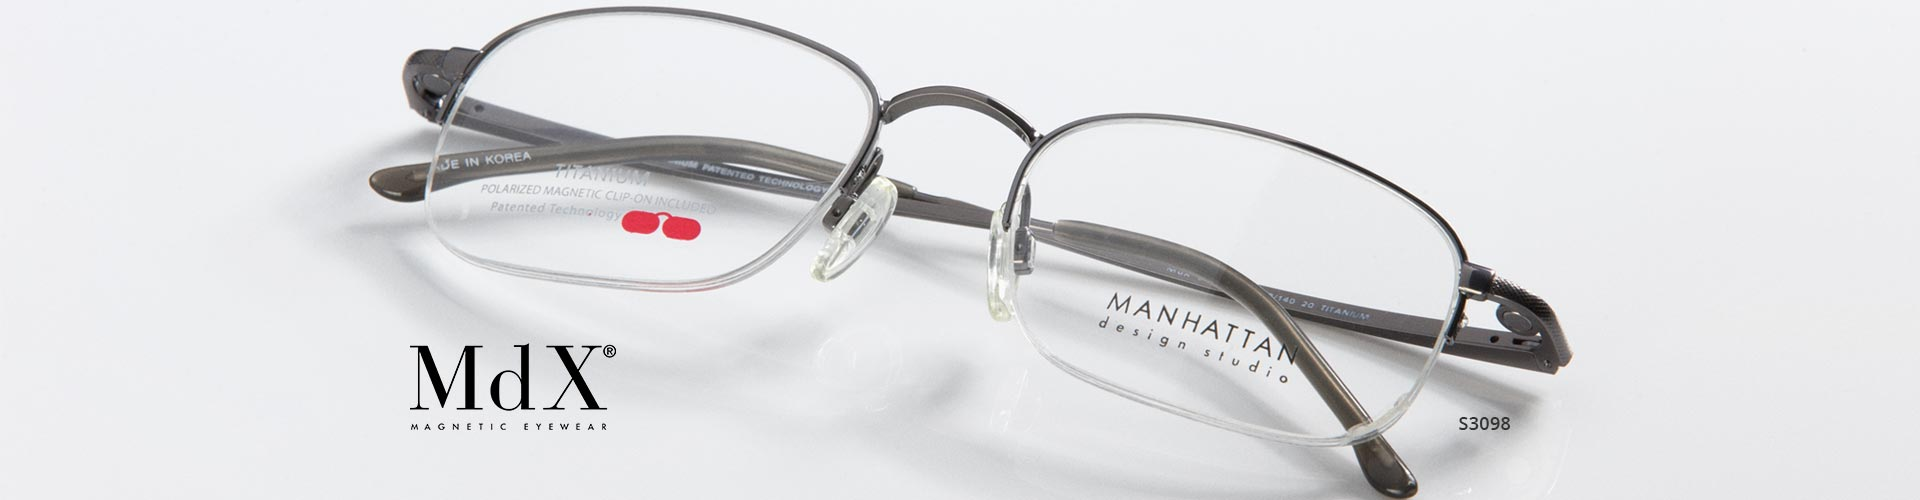 MDX Manhatten Eyeglasses